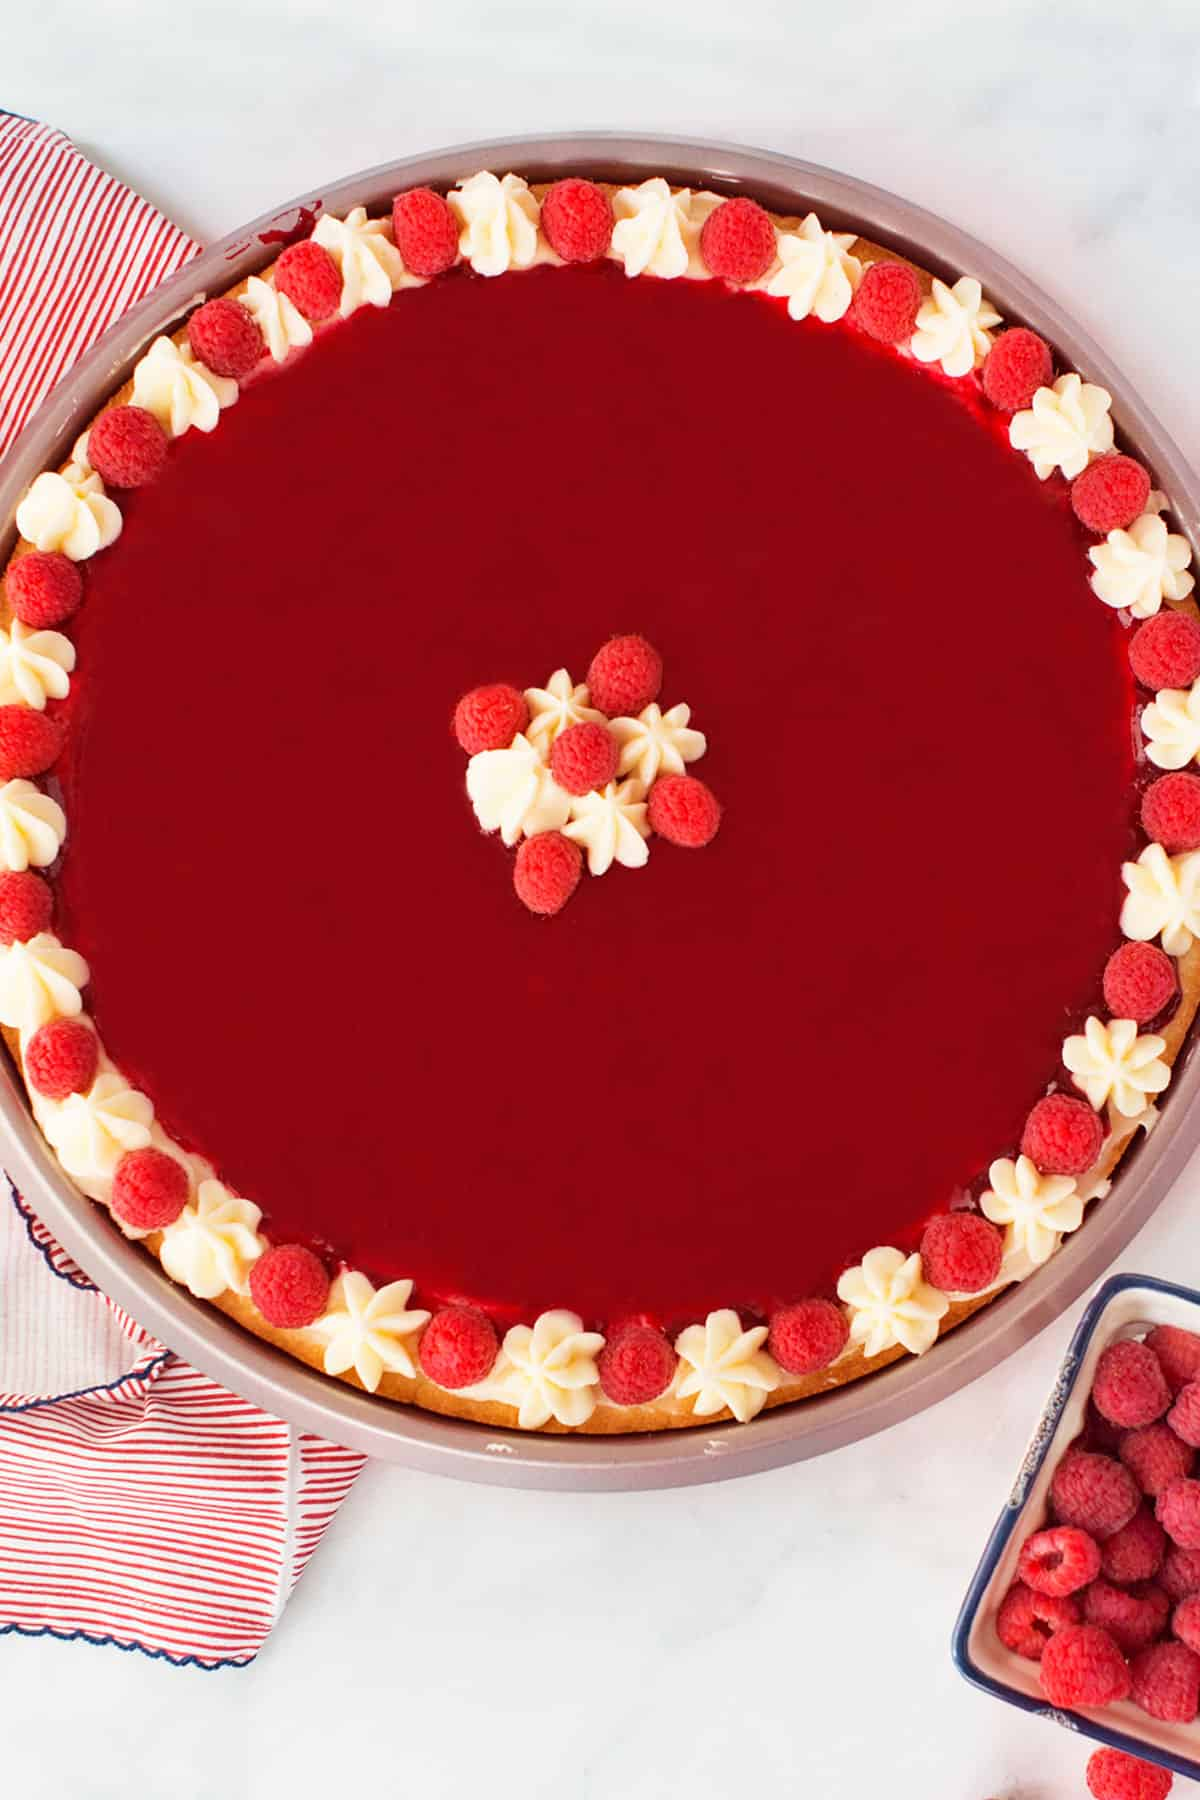 A large raspberry tart with fresh cream and raspberries on top with a red, white and blue towel and a small square dish of raspberries on the side.